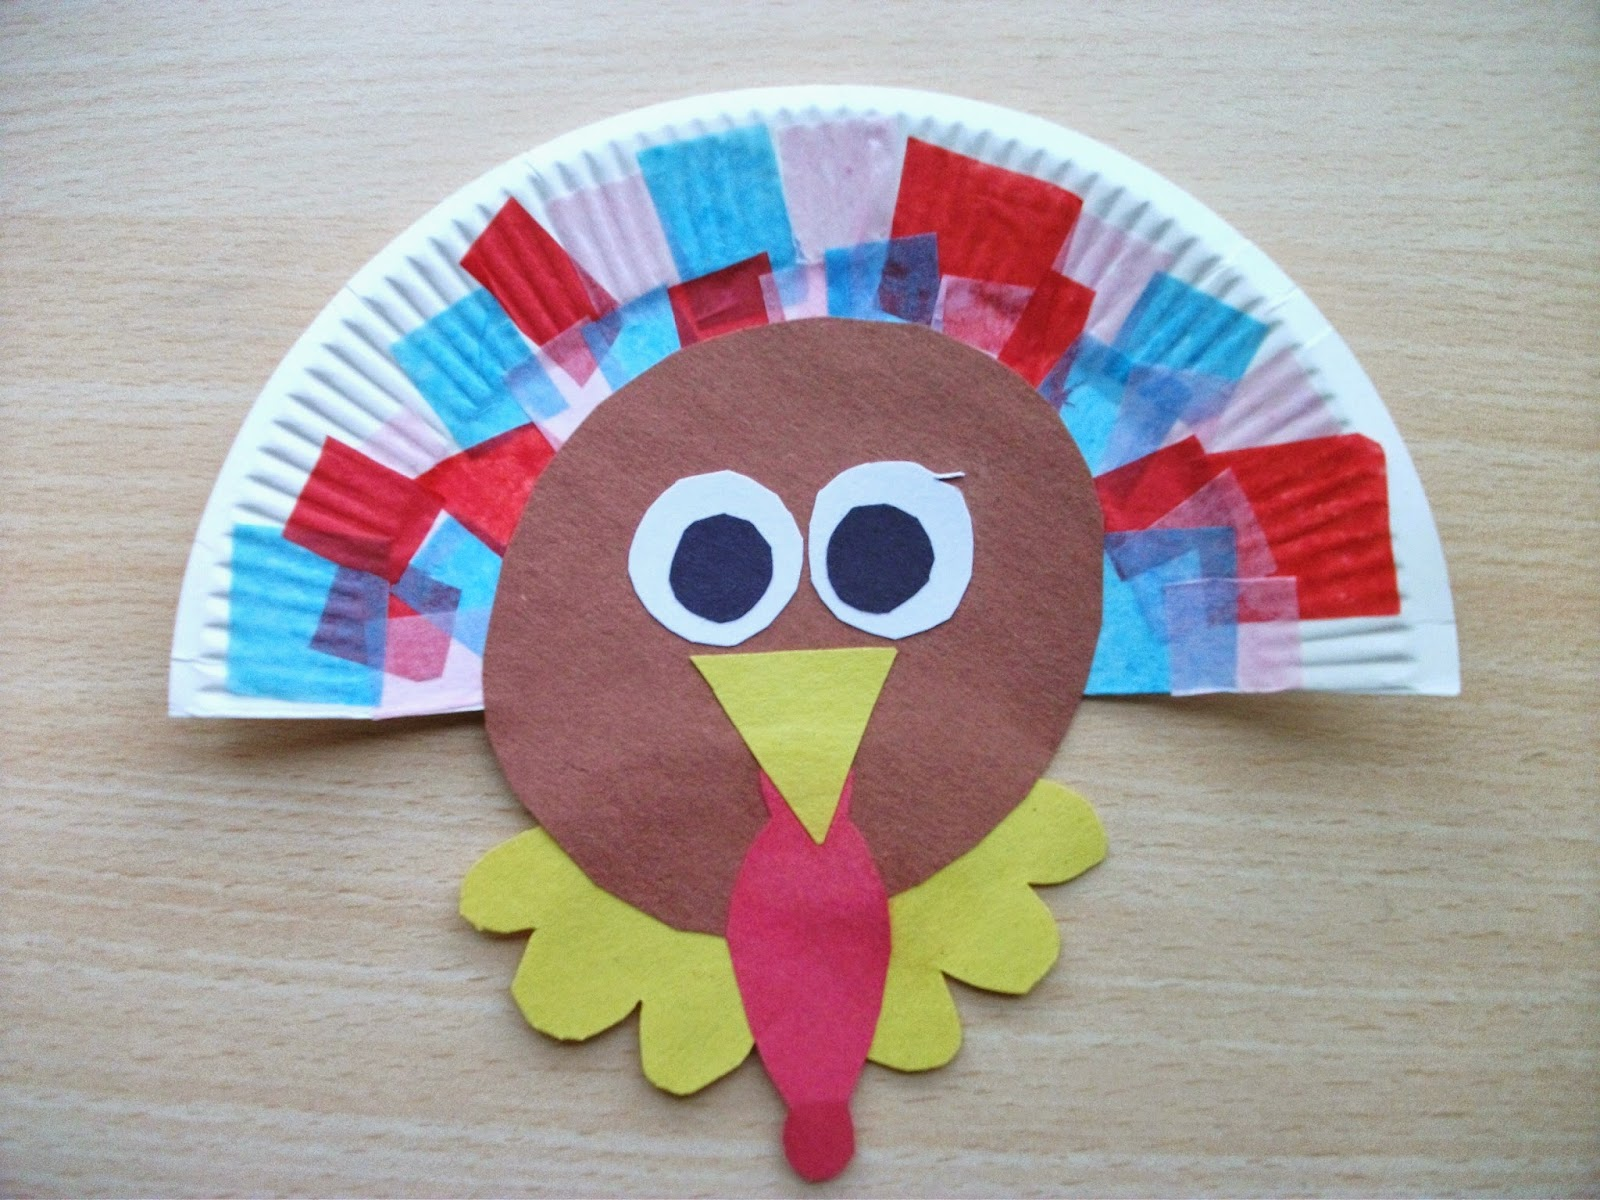 Preschool crafts for kids november 2014 for November arts and crafts for daycare